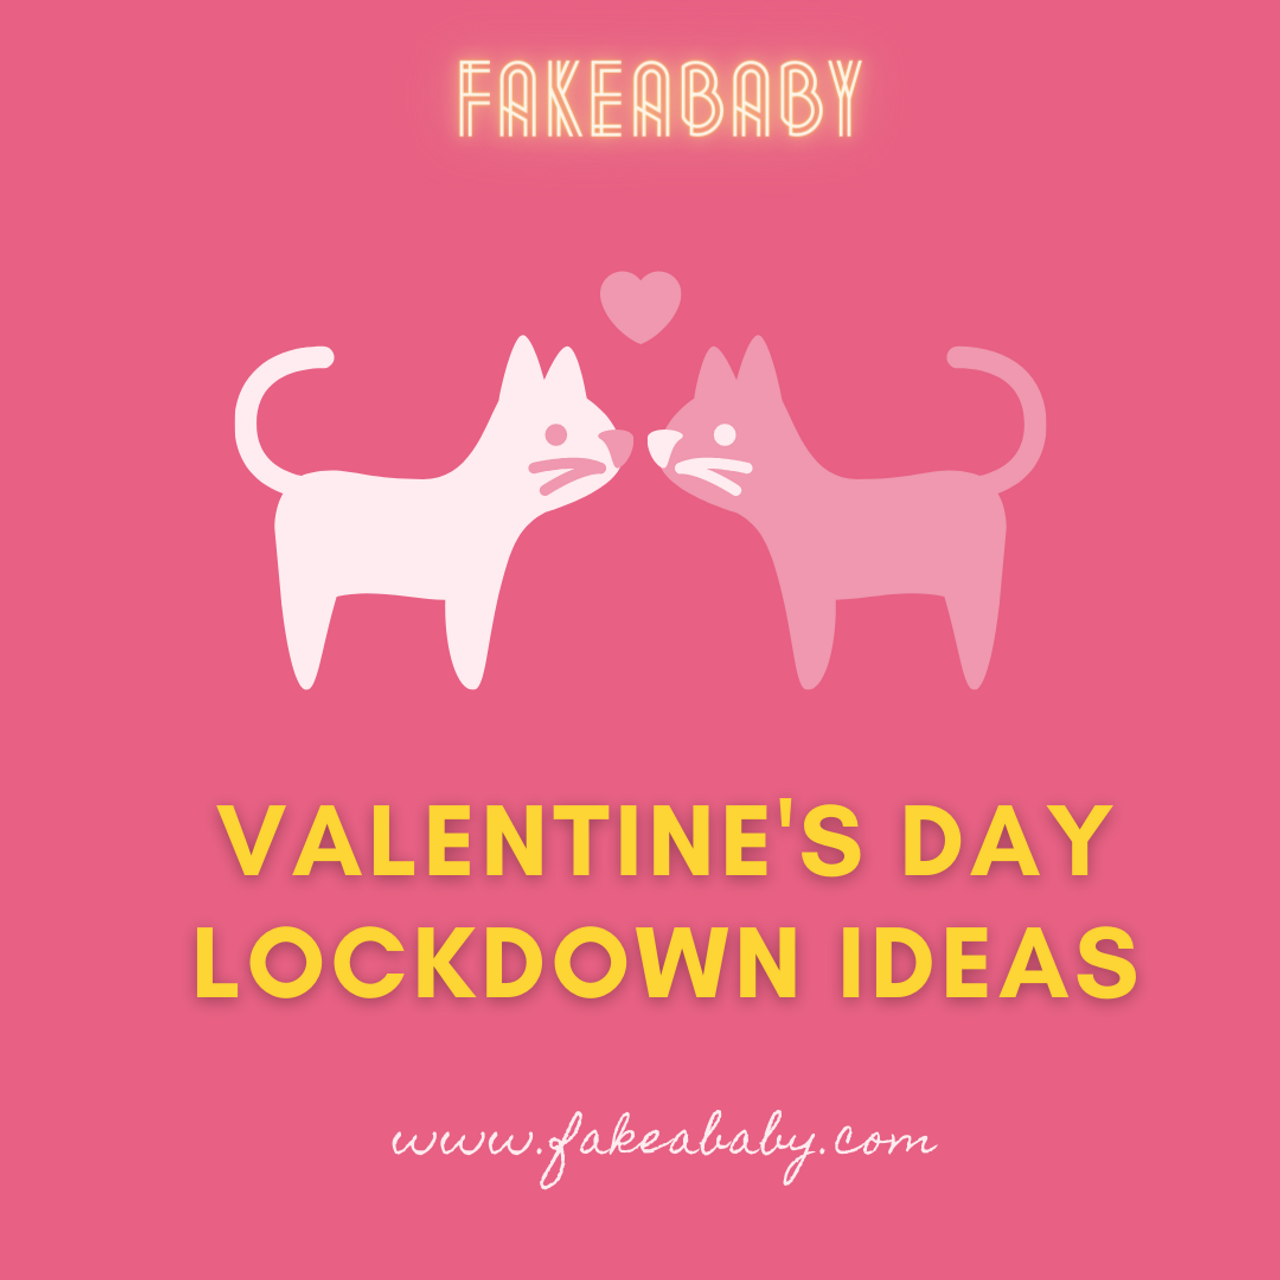 VALENTINE'S DAY LOCKDOWN IDEAS